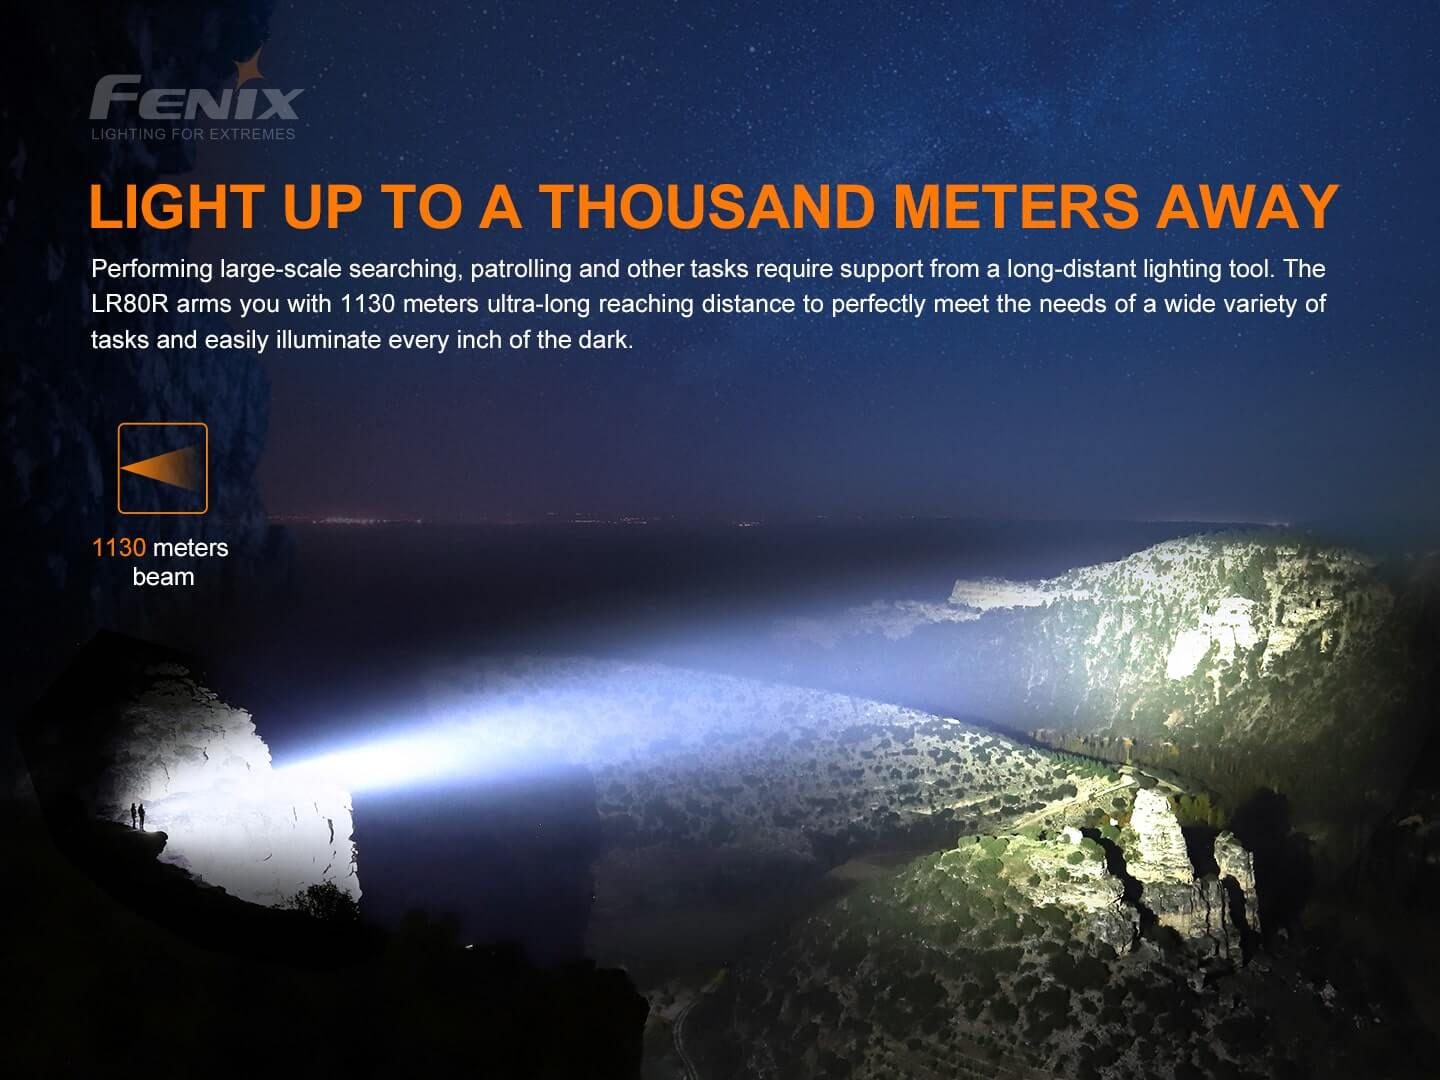 Fenix LR80R LED Searchlight in India, Extremely Powerful Rechargeable Torch 18000 Lumens, Best Searchlight for Search & Rescue and Outdoors